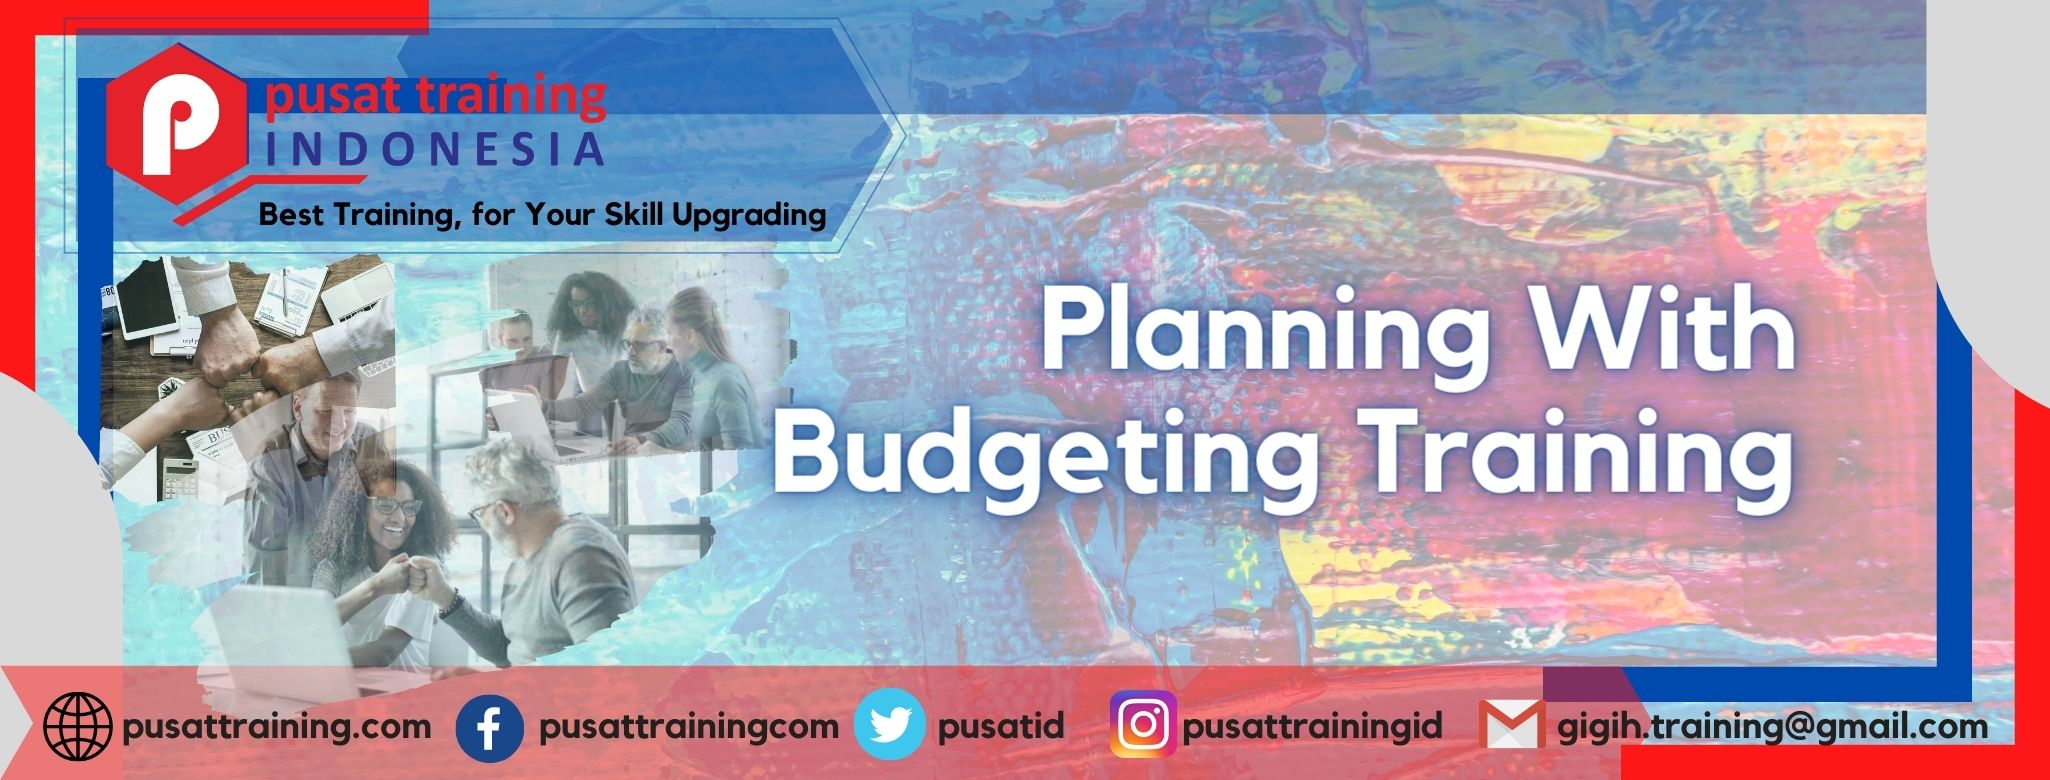 Planning With Budgeting Training